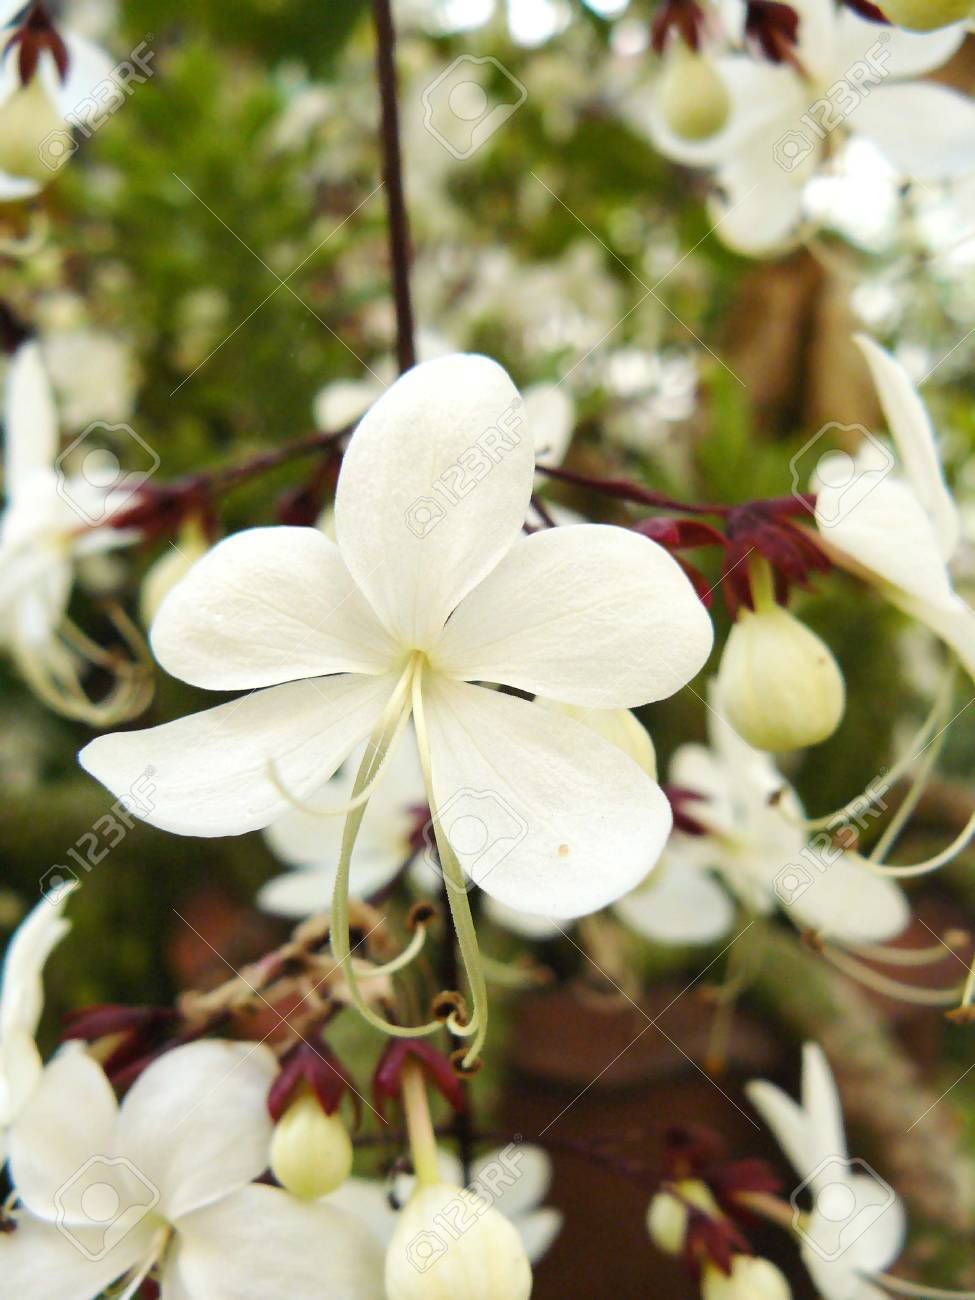 Close Up Of White Flower Nodding Clerodendron Or Clerodendrum